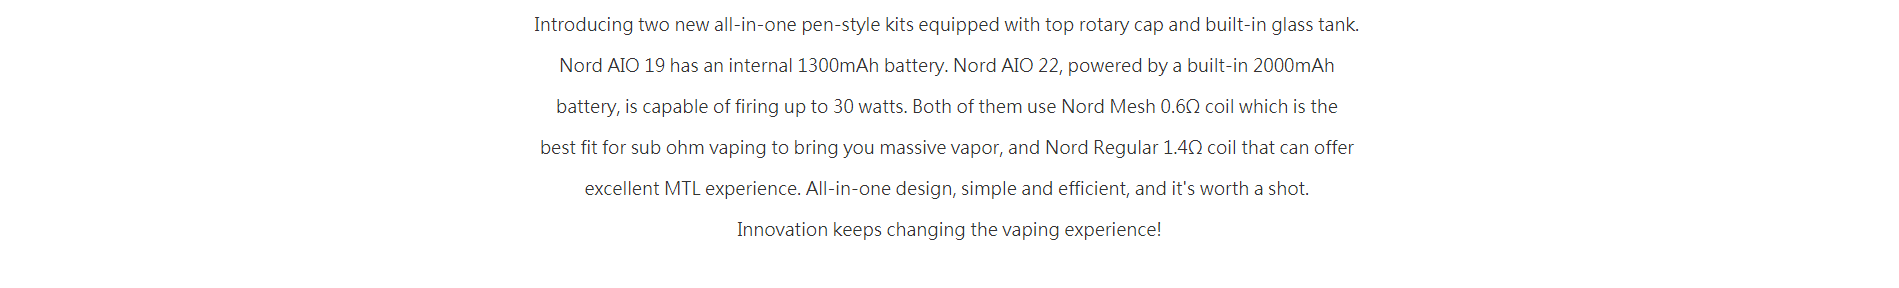 Nord AIO 22, powered by a built-in 2000mAh